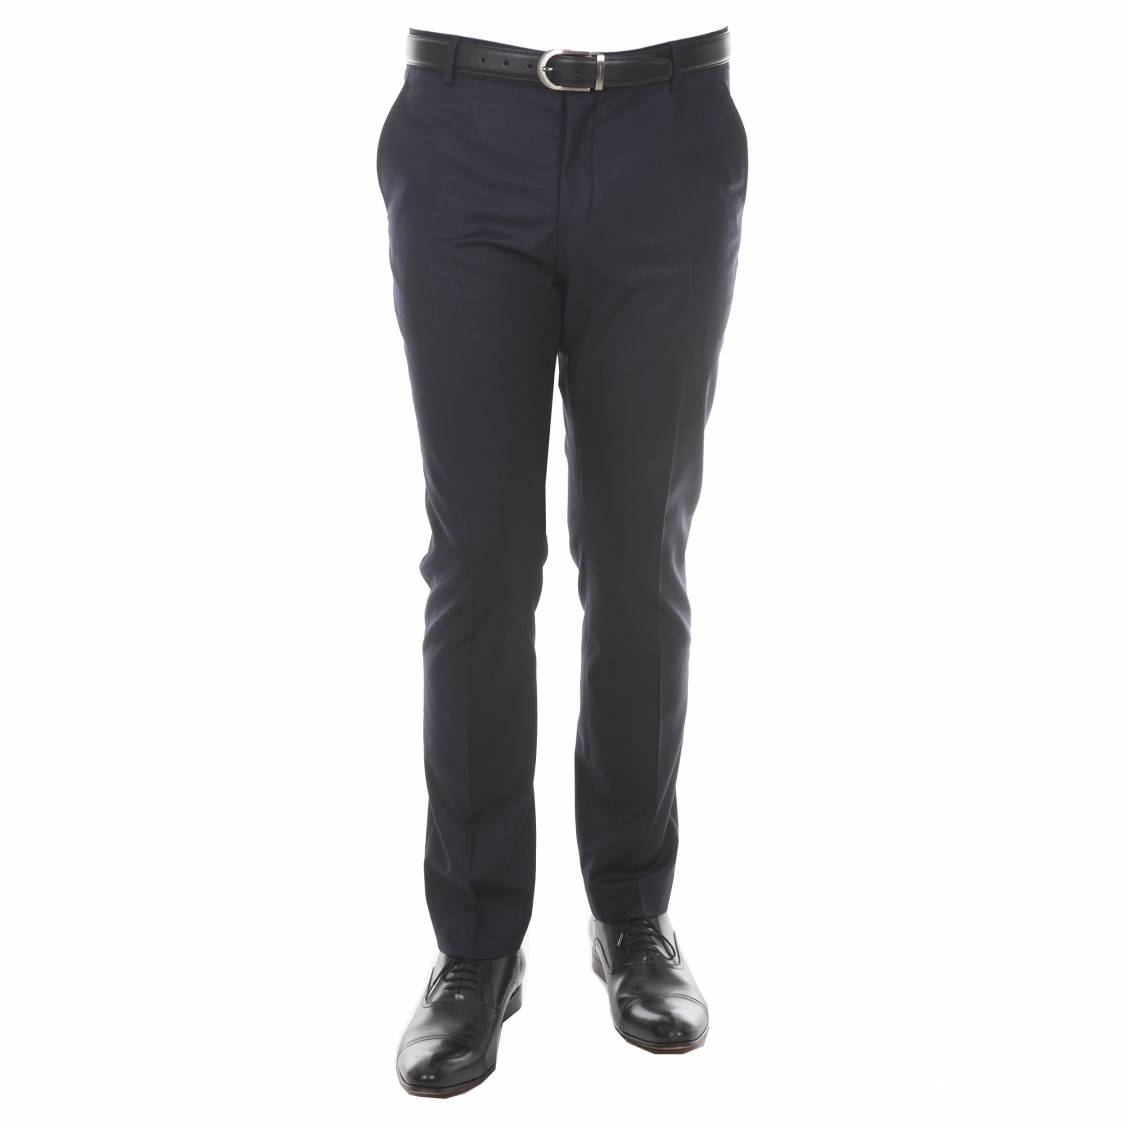 Pantalon de costume cintré selected bleu marine